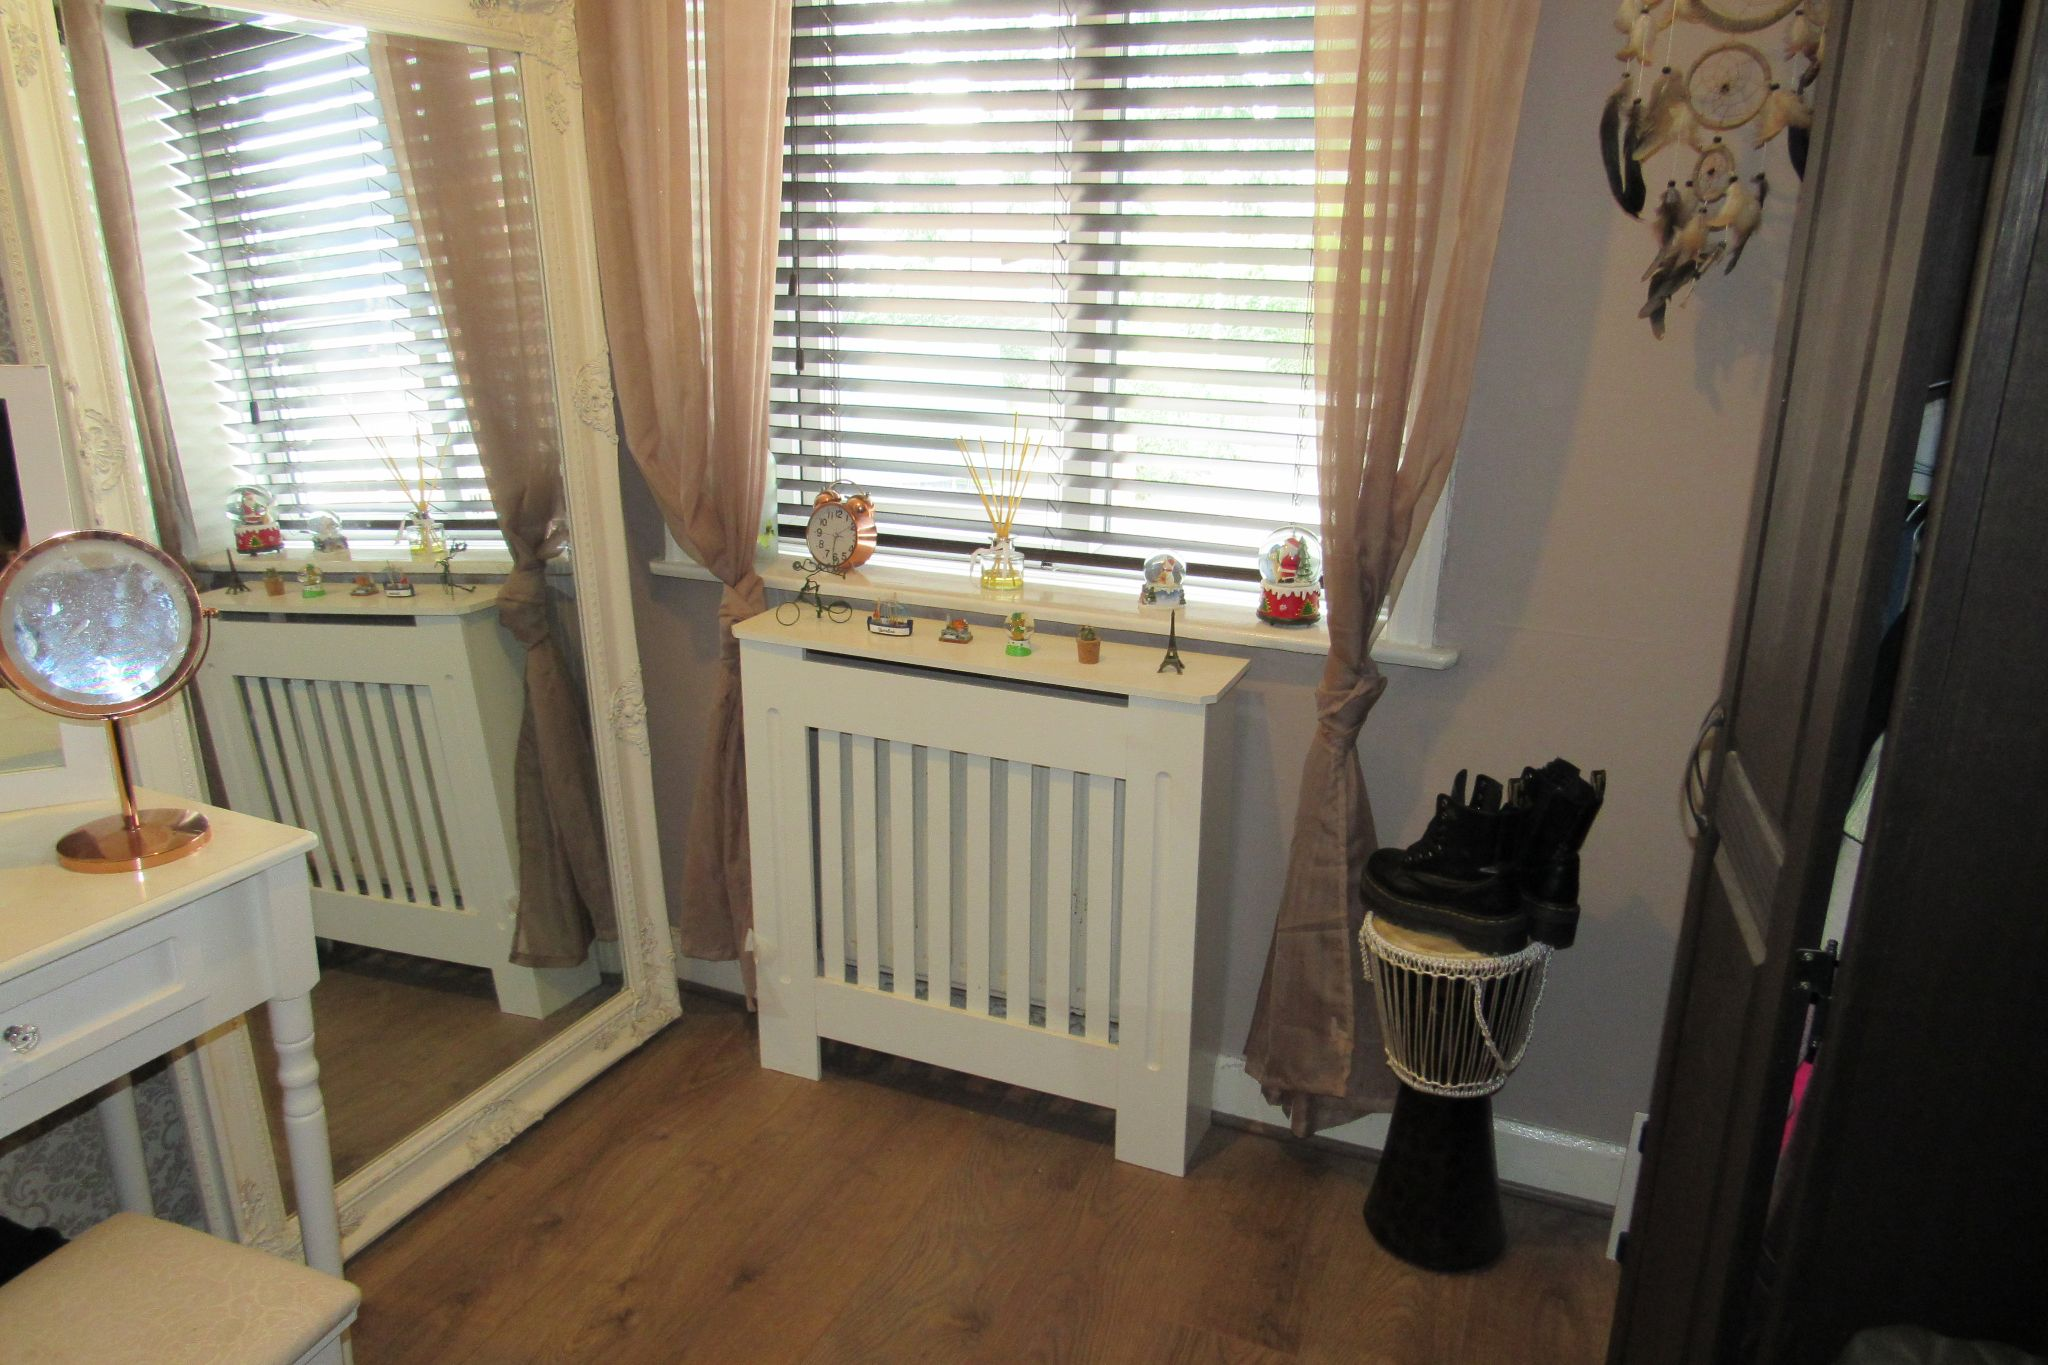 3 bedroom mid terraced house SSTC in Manchester - Photograph 14.